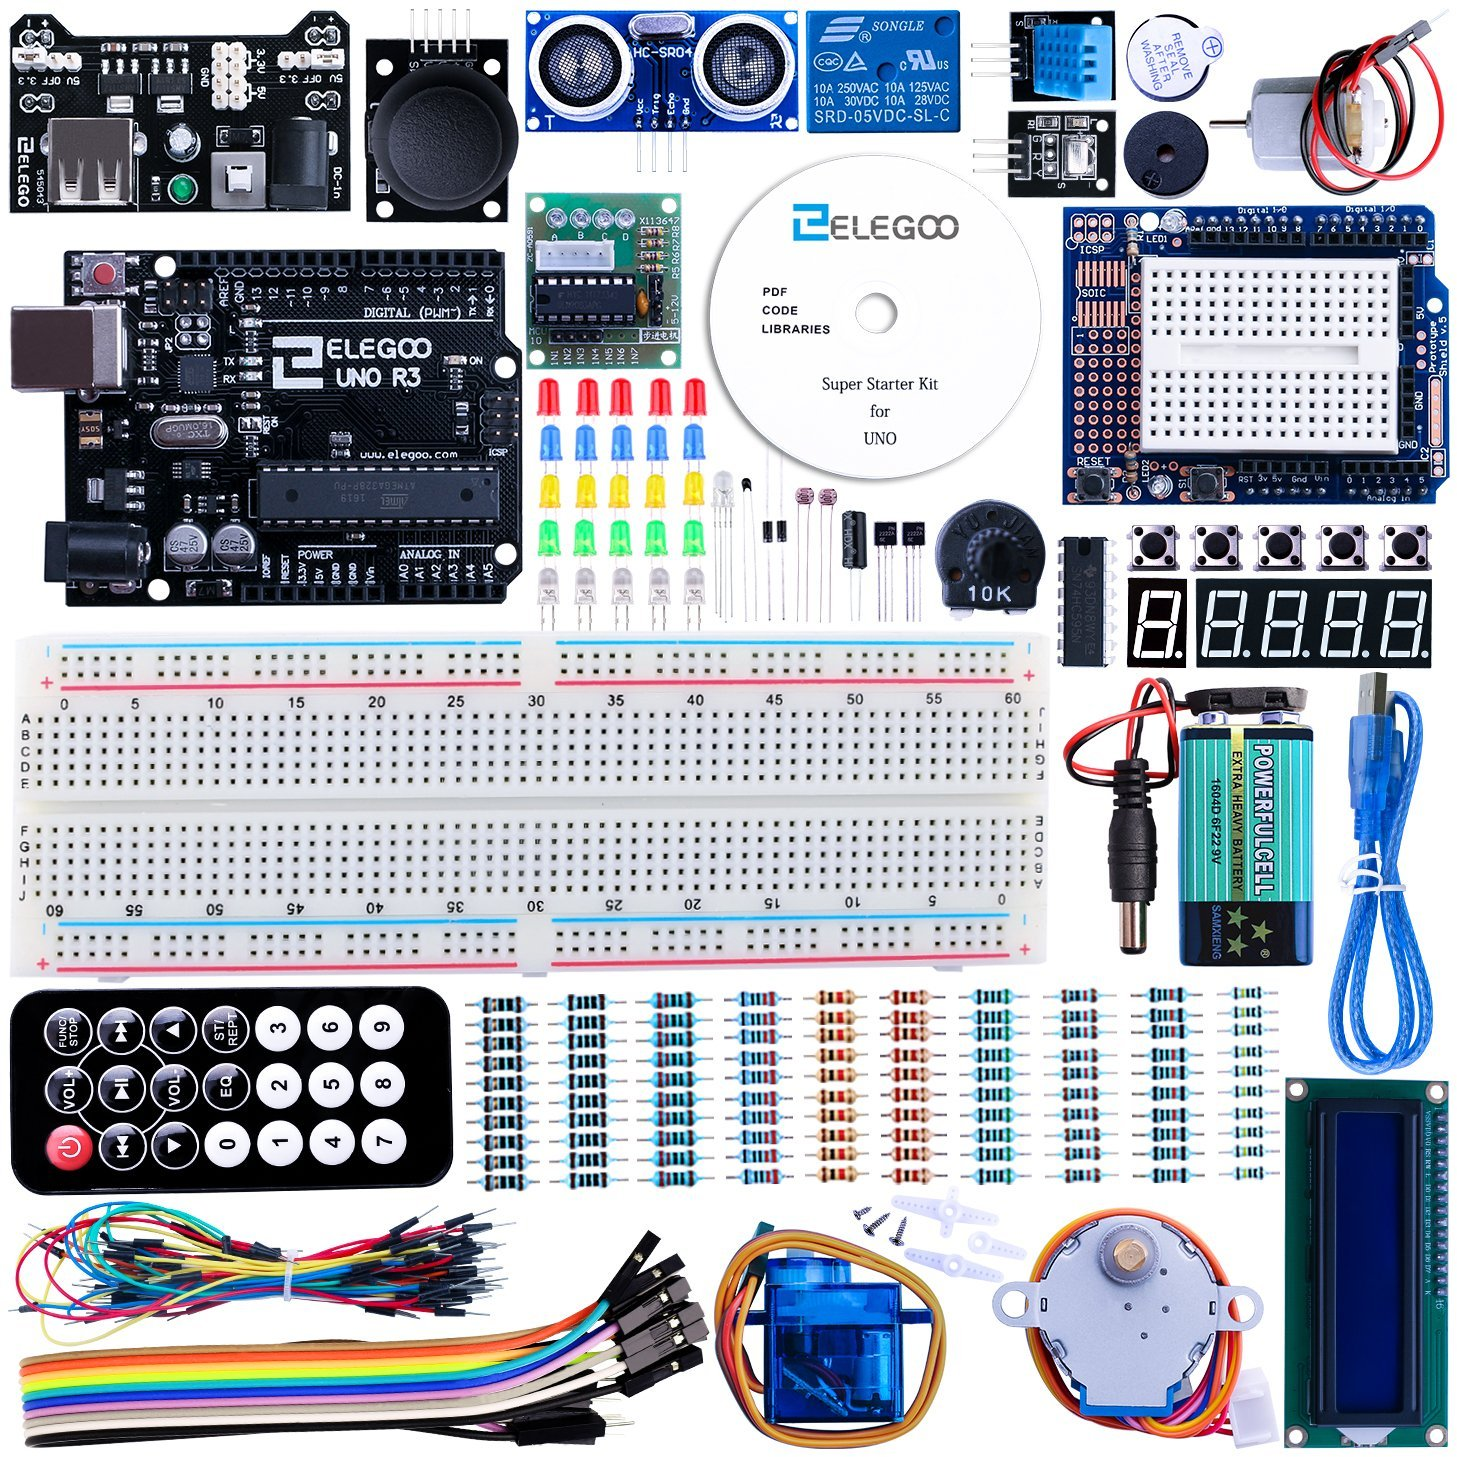 Clone Kit Arduino Clone Project Kit Loaded With Components Boing Boing